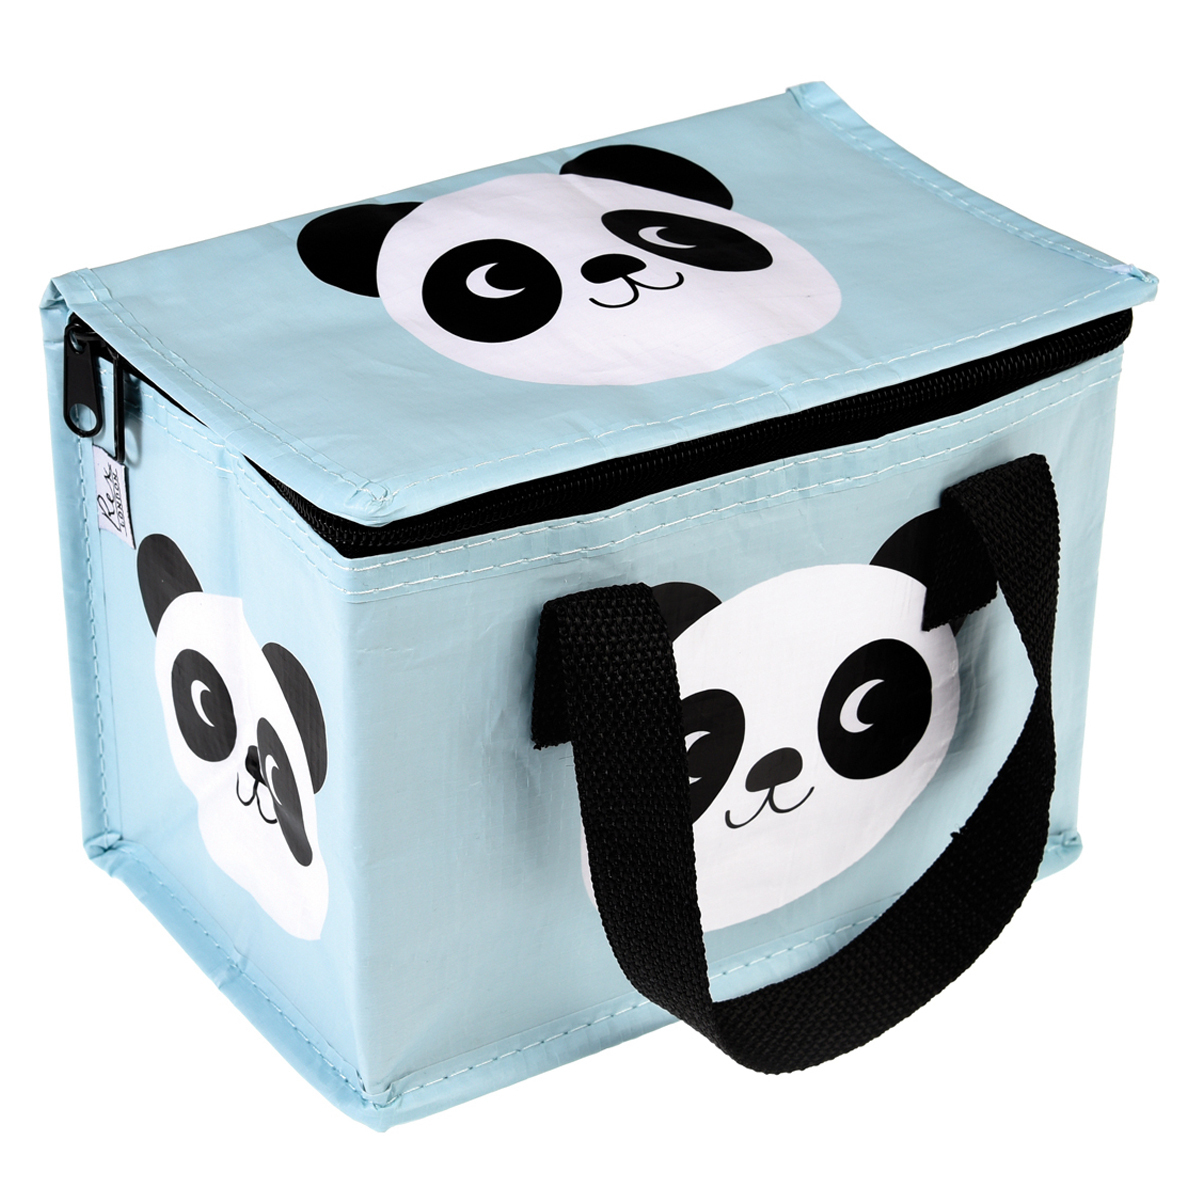 Sac isotherme Lunch Bag - Miko le Panda Lunch Bag - Miko le Panda